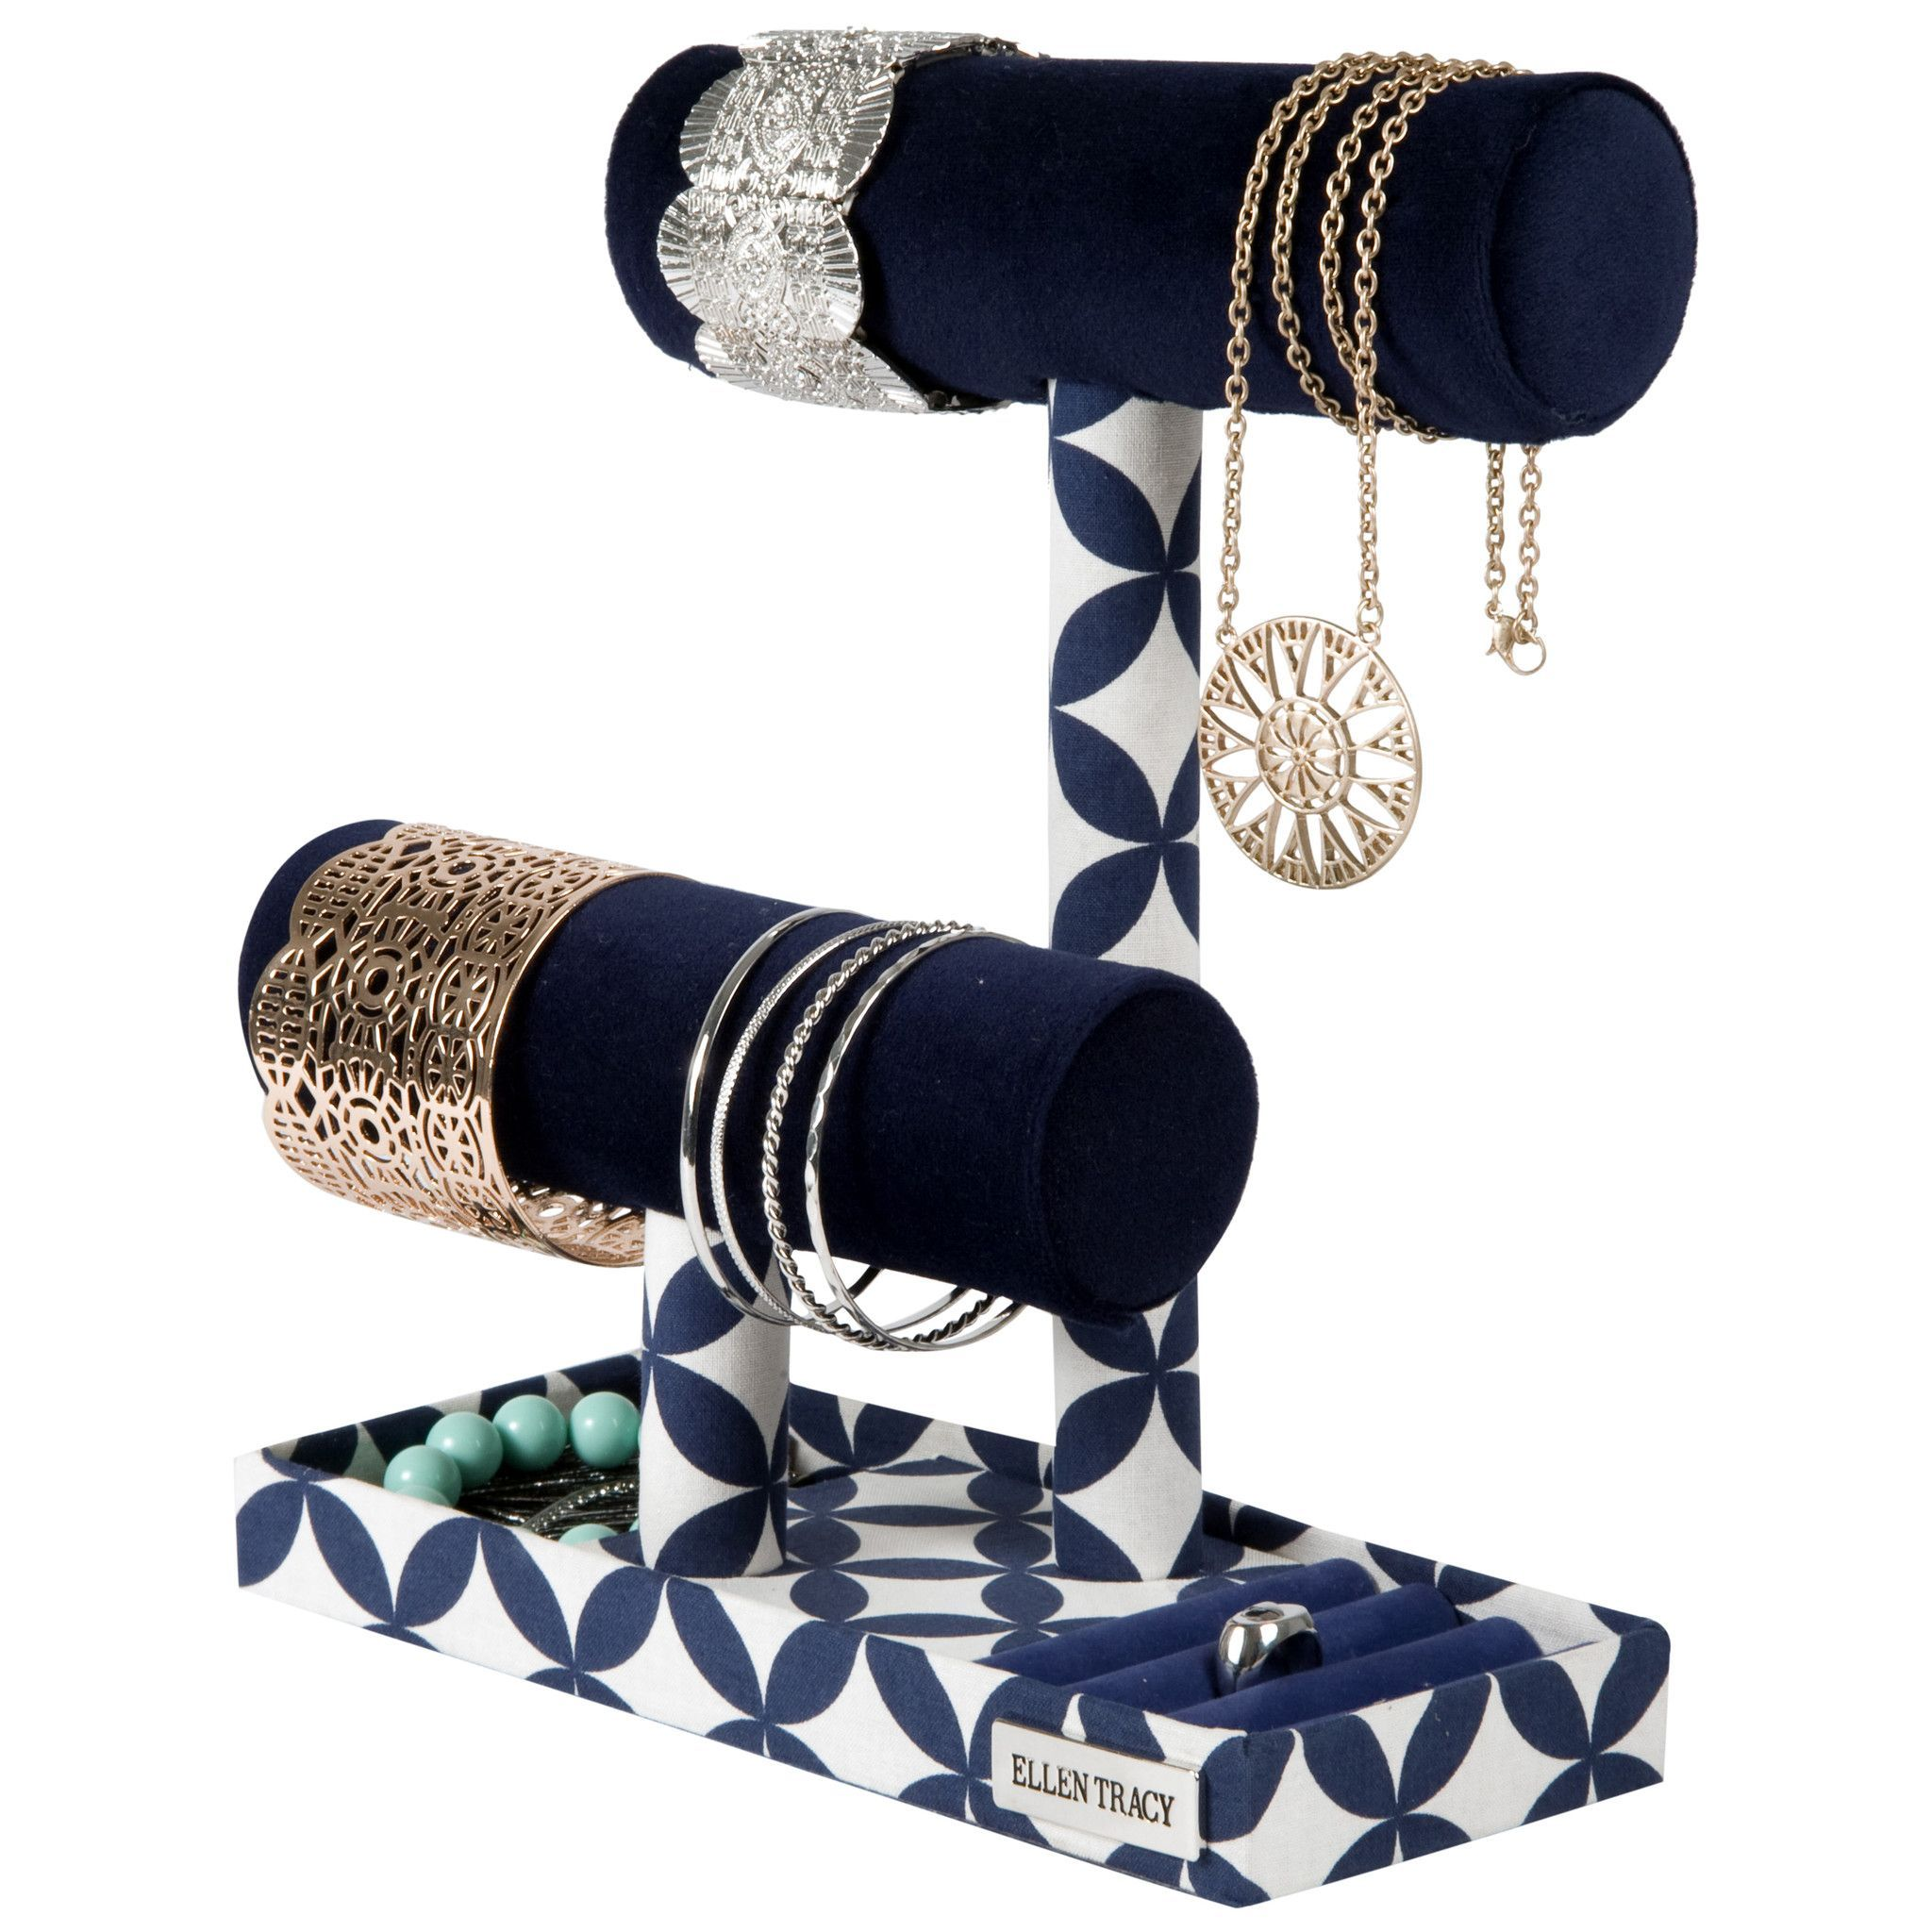 Ellen Tracy Double Bar Jewelry Stand Products Pinterest